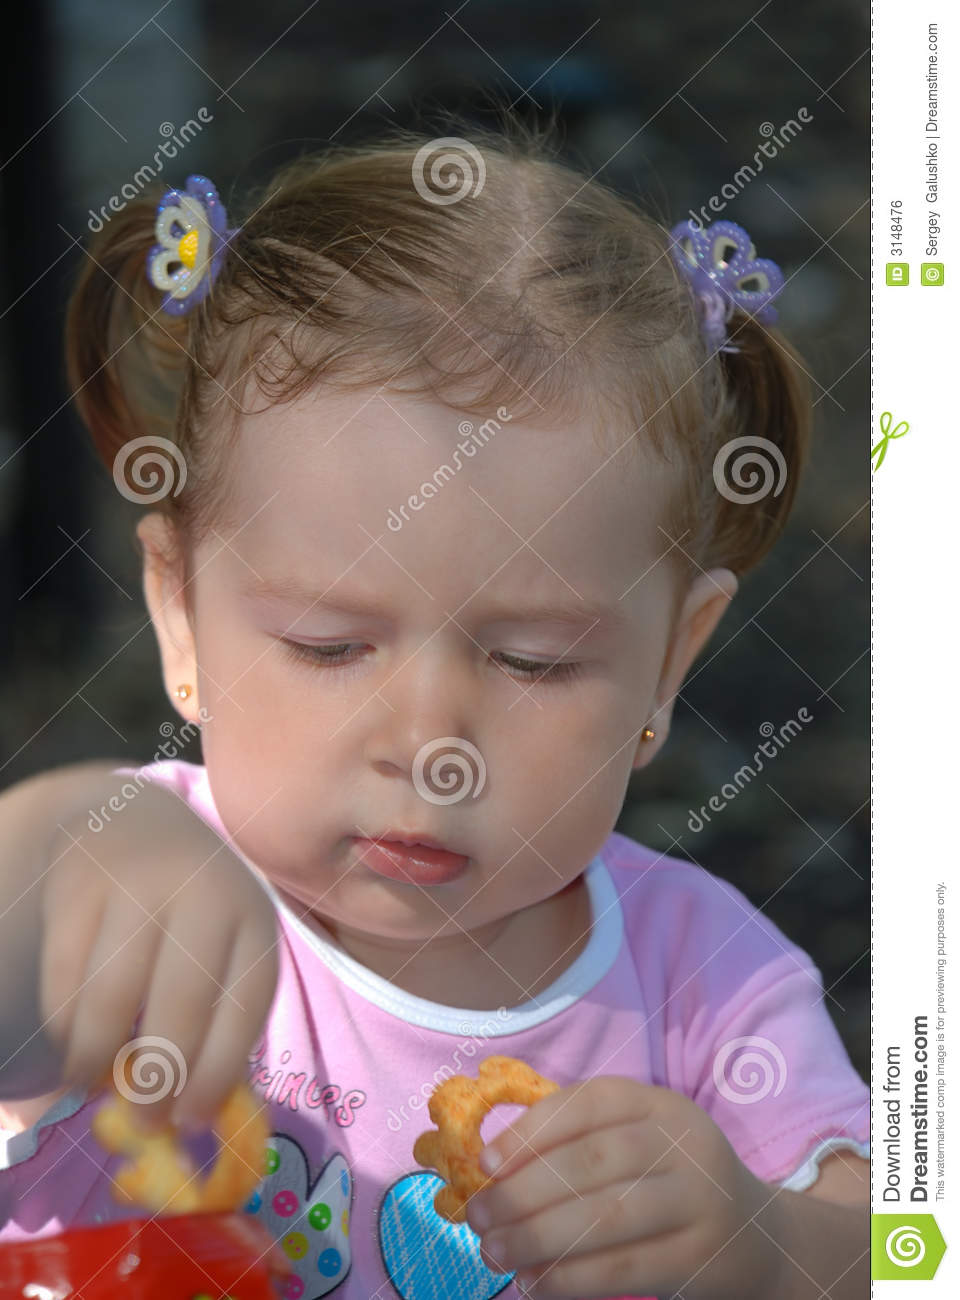 The girl taking cookie